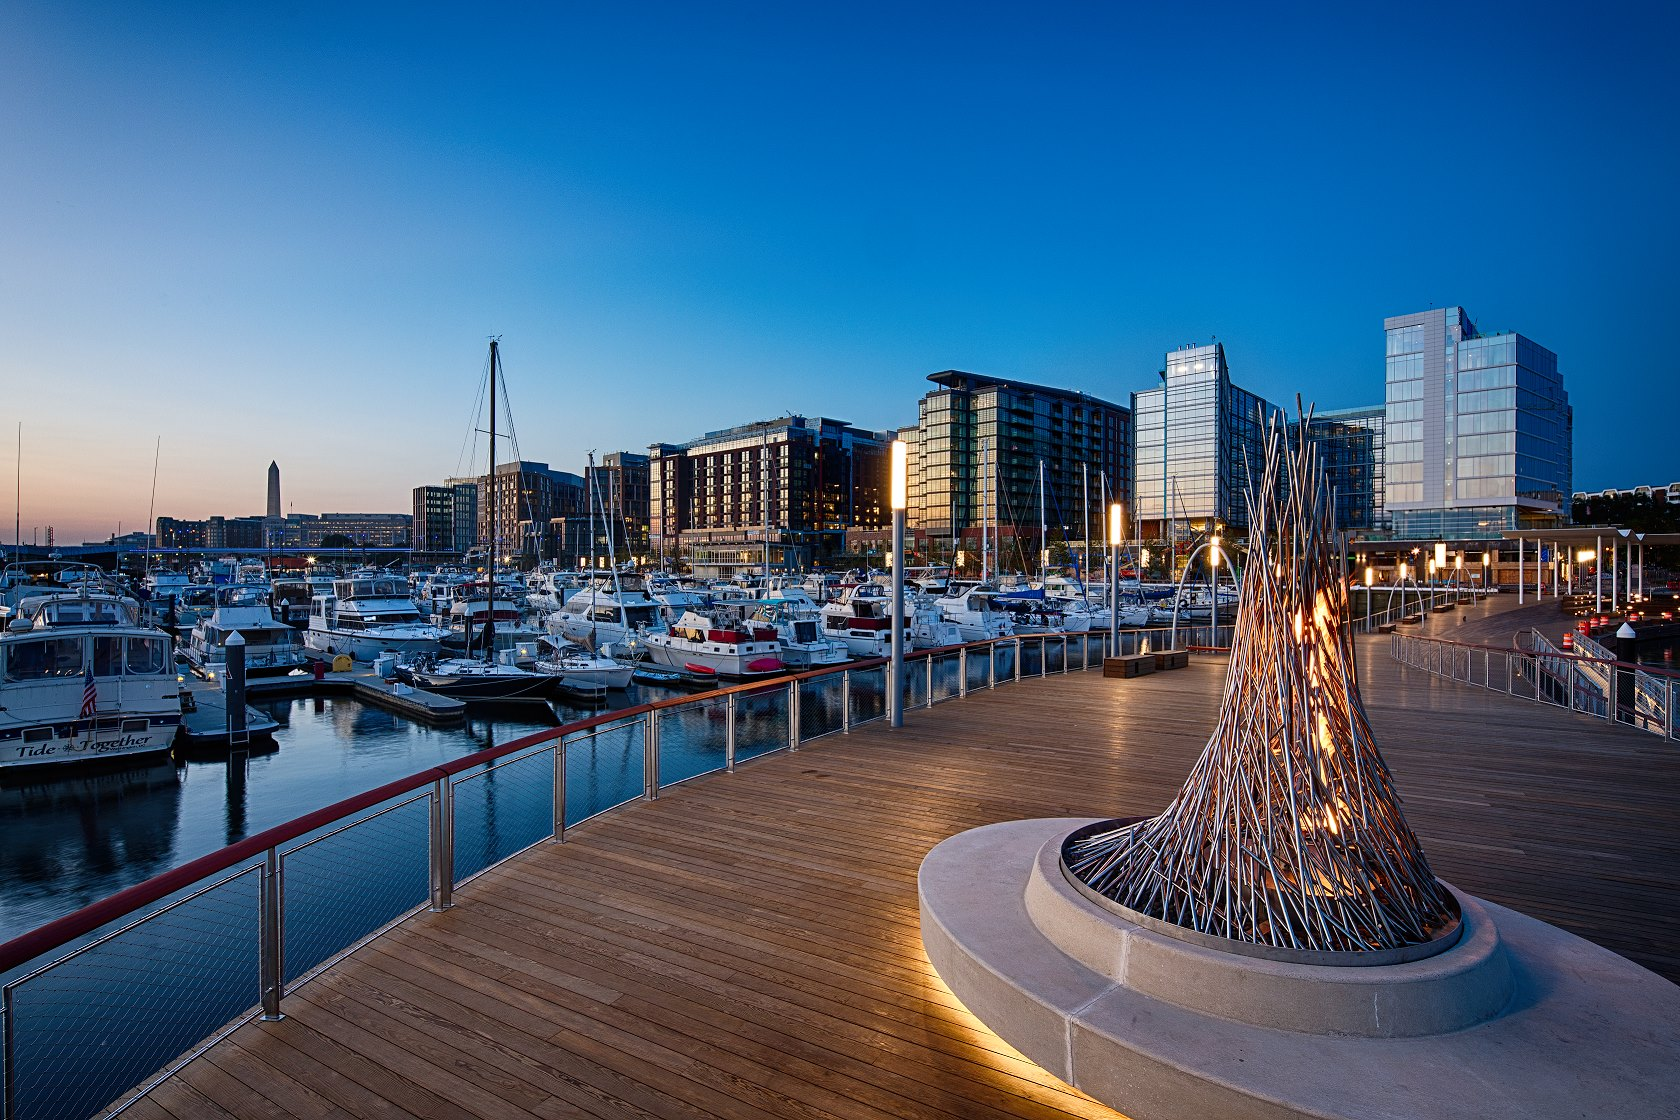 The Wharf Marina | 2018's Most Visited Cities | Snag-A-Slip